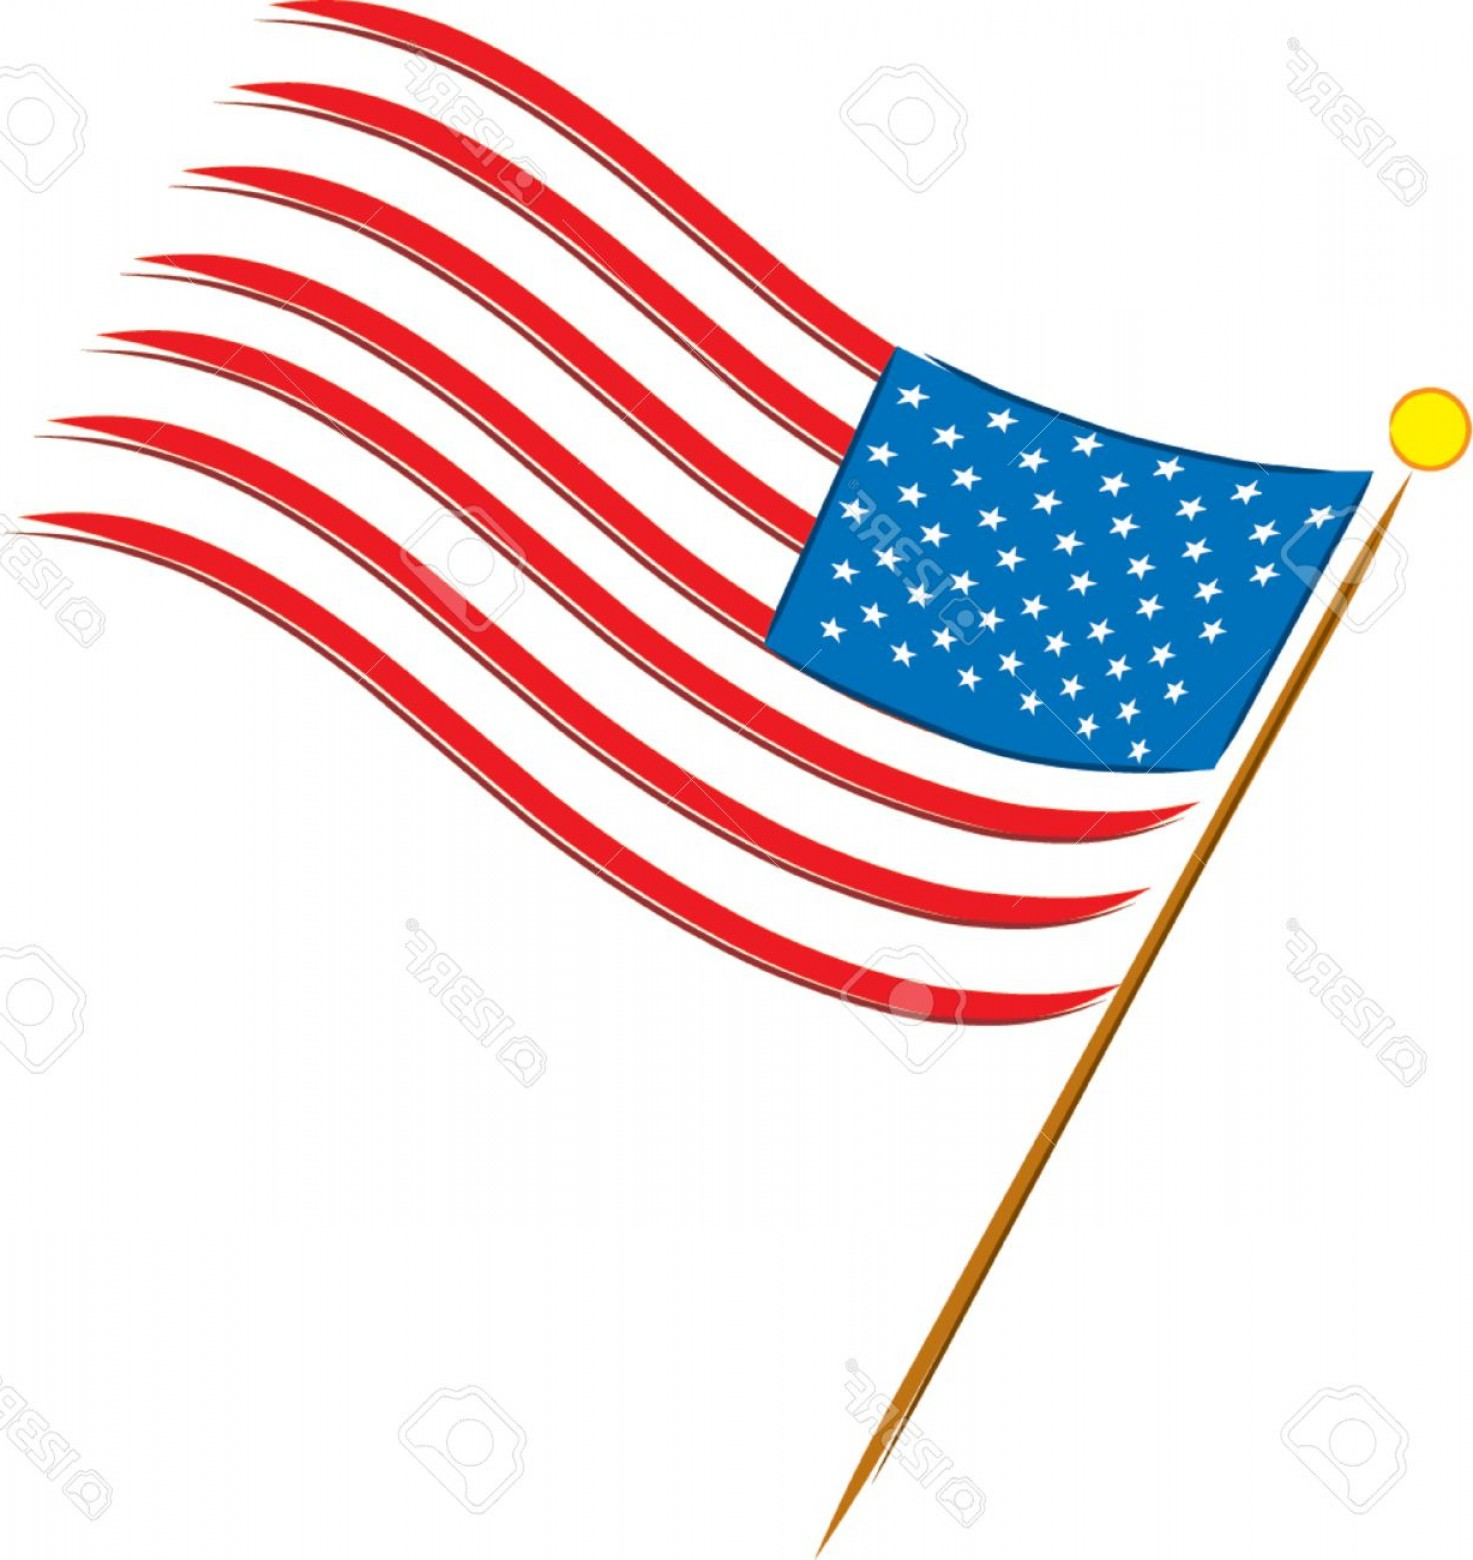 American Flag On Pole Vector: Photoamerican Flag On A White Background With Stars